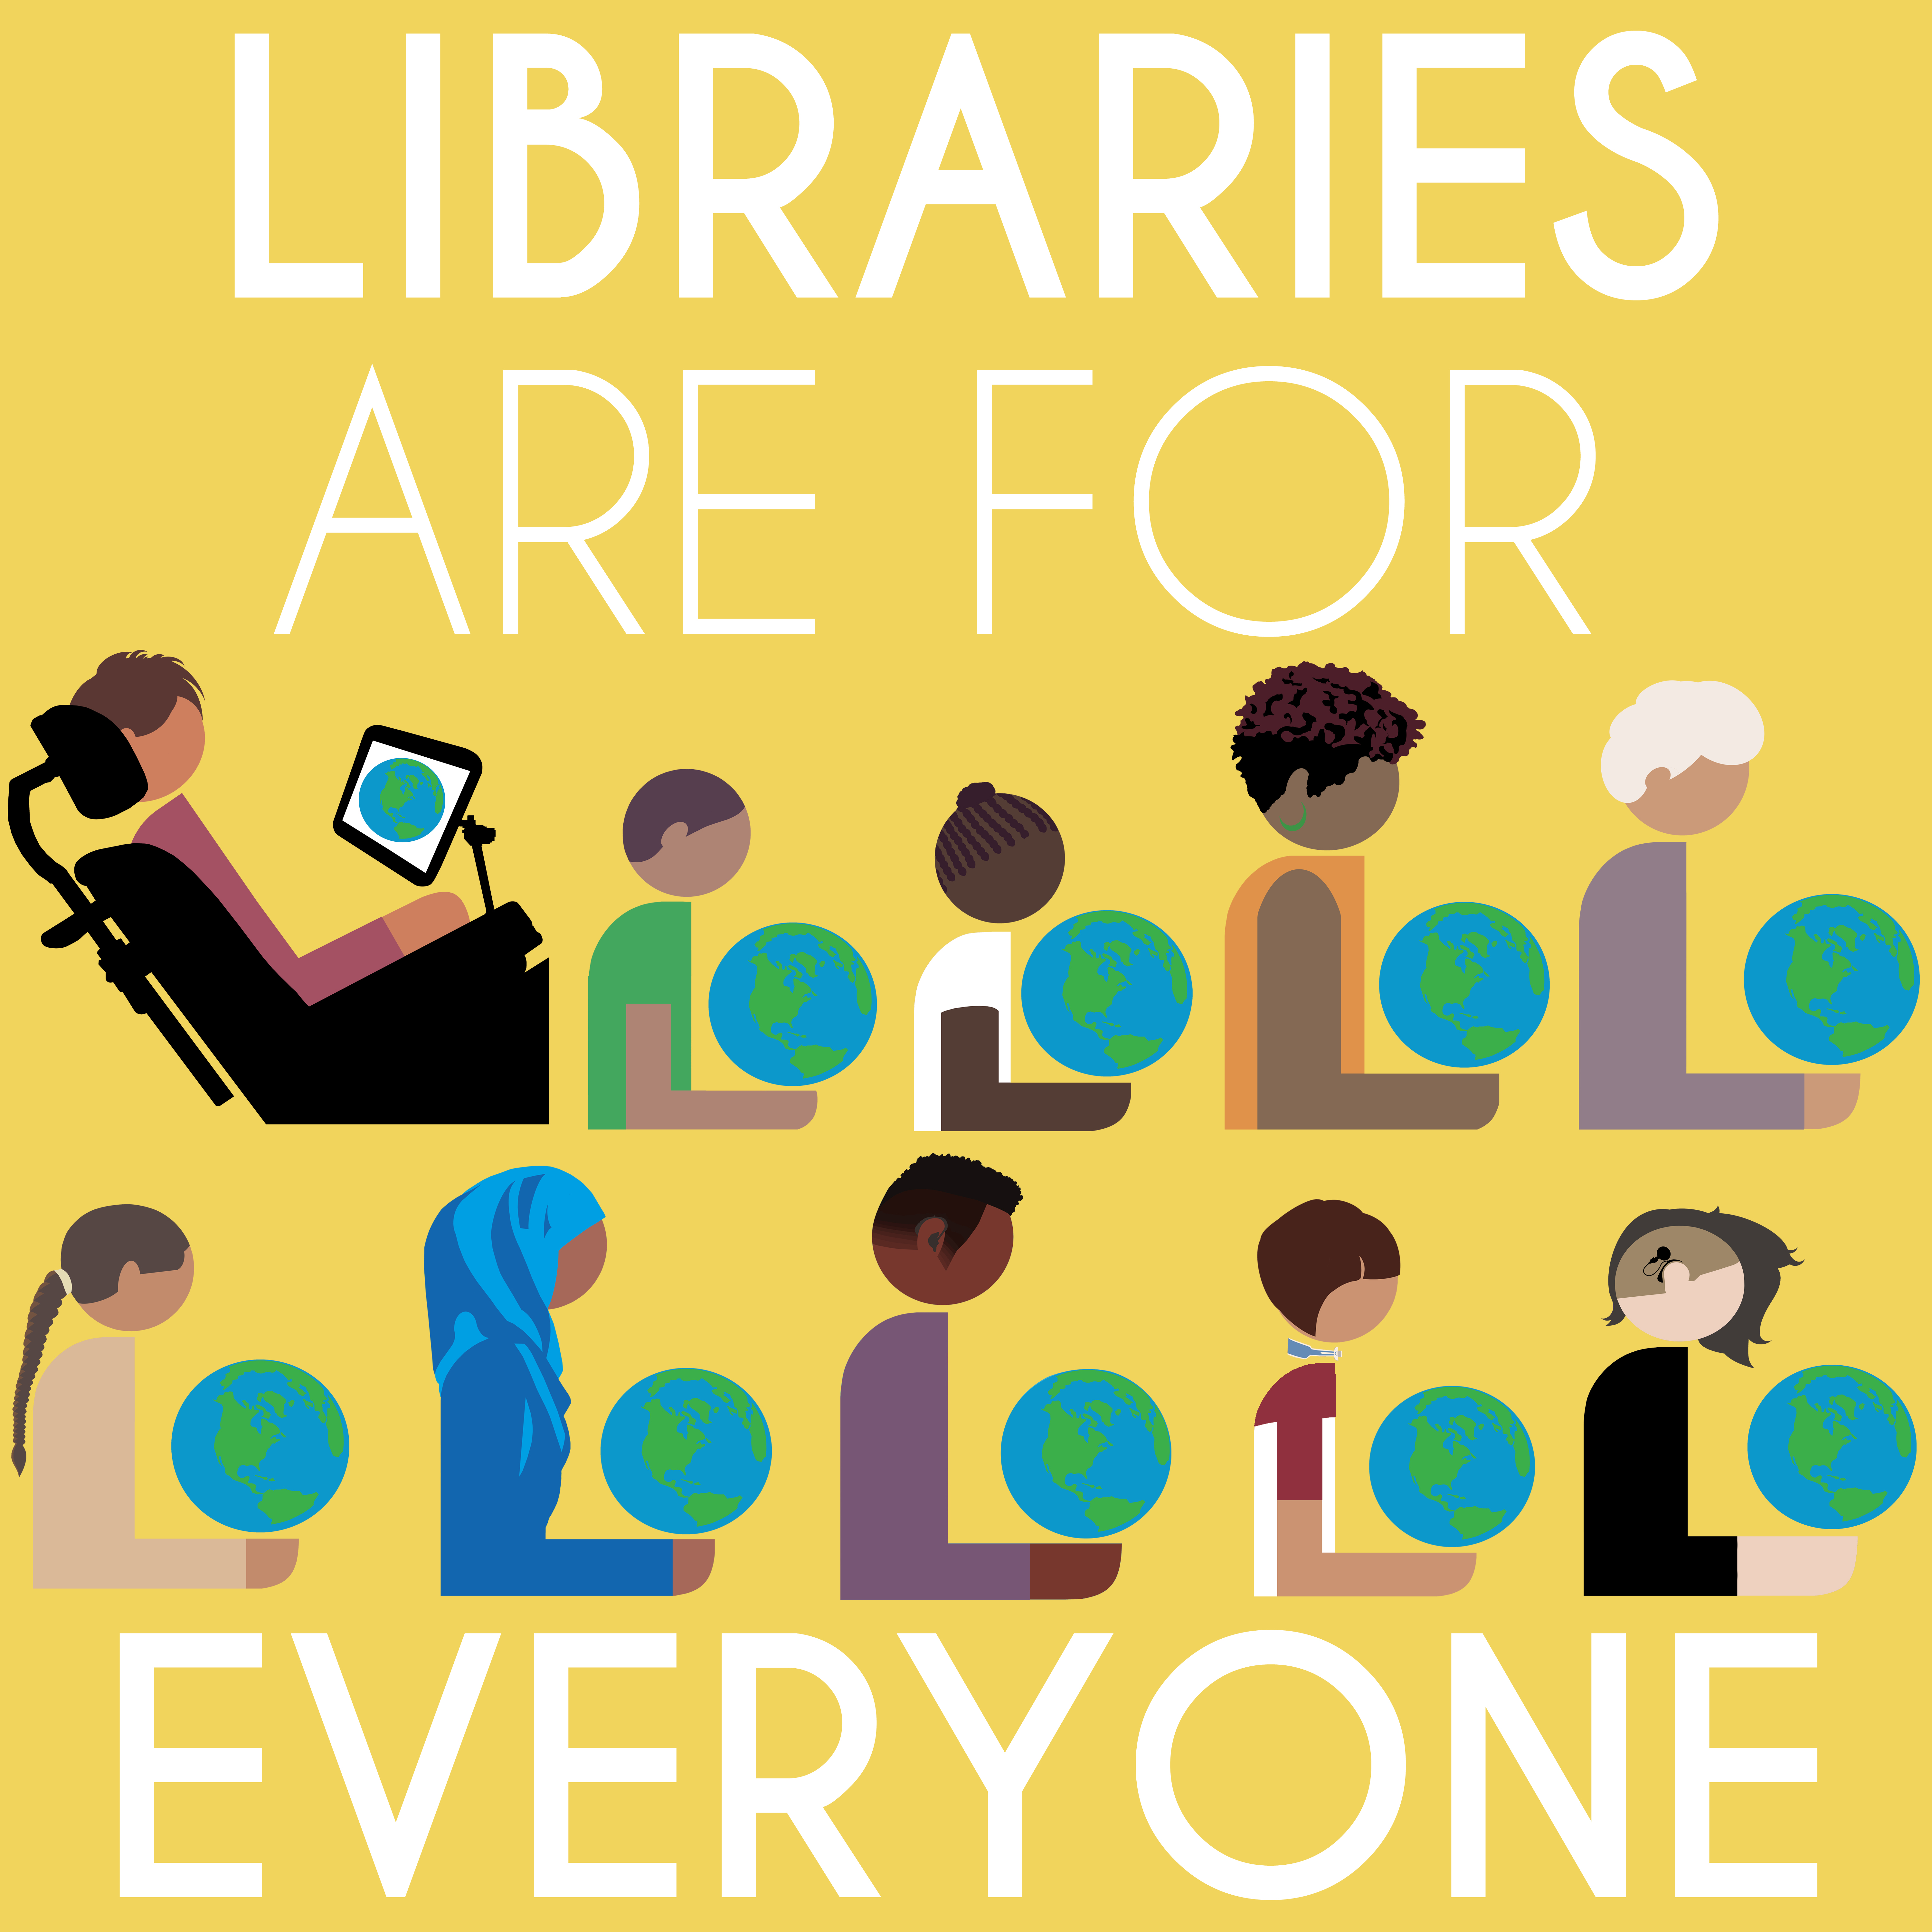 Image: Libraries are for everyone